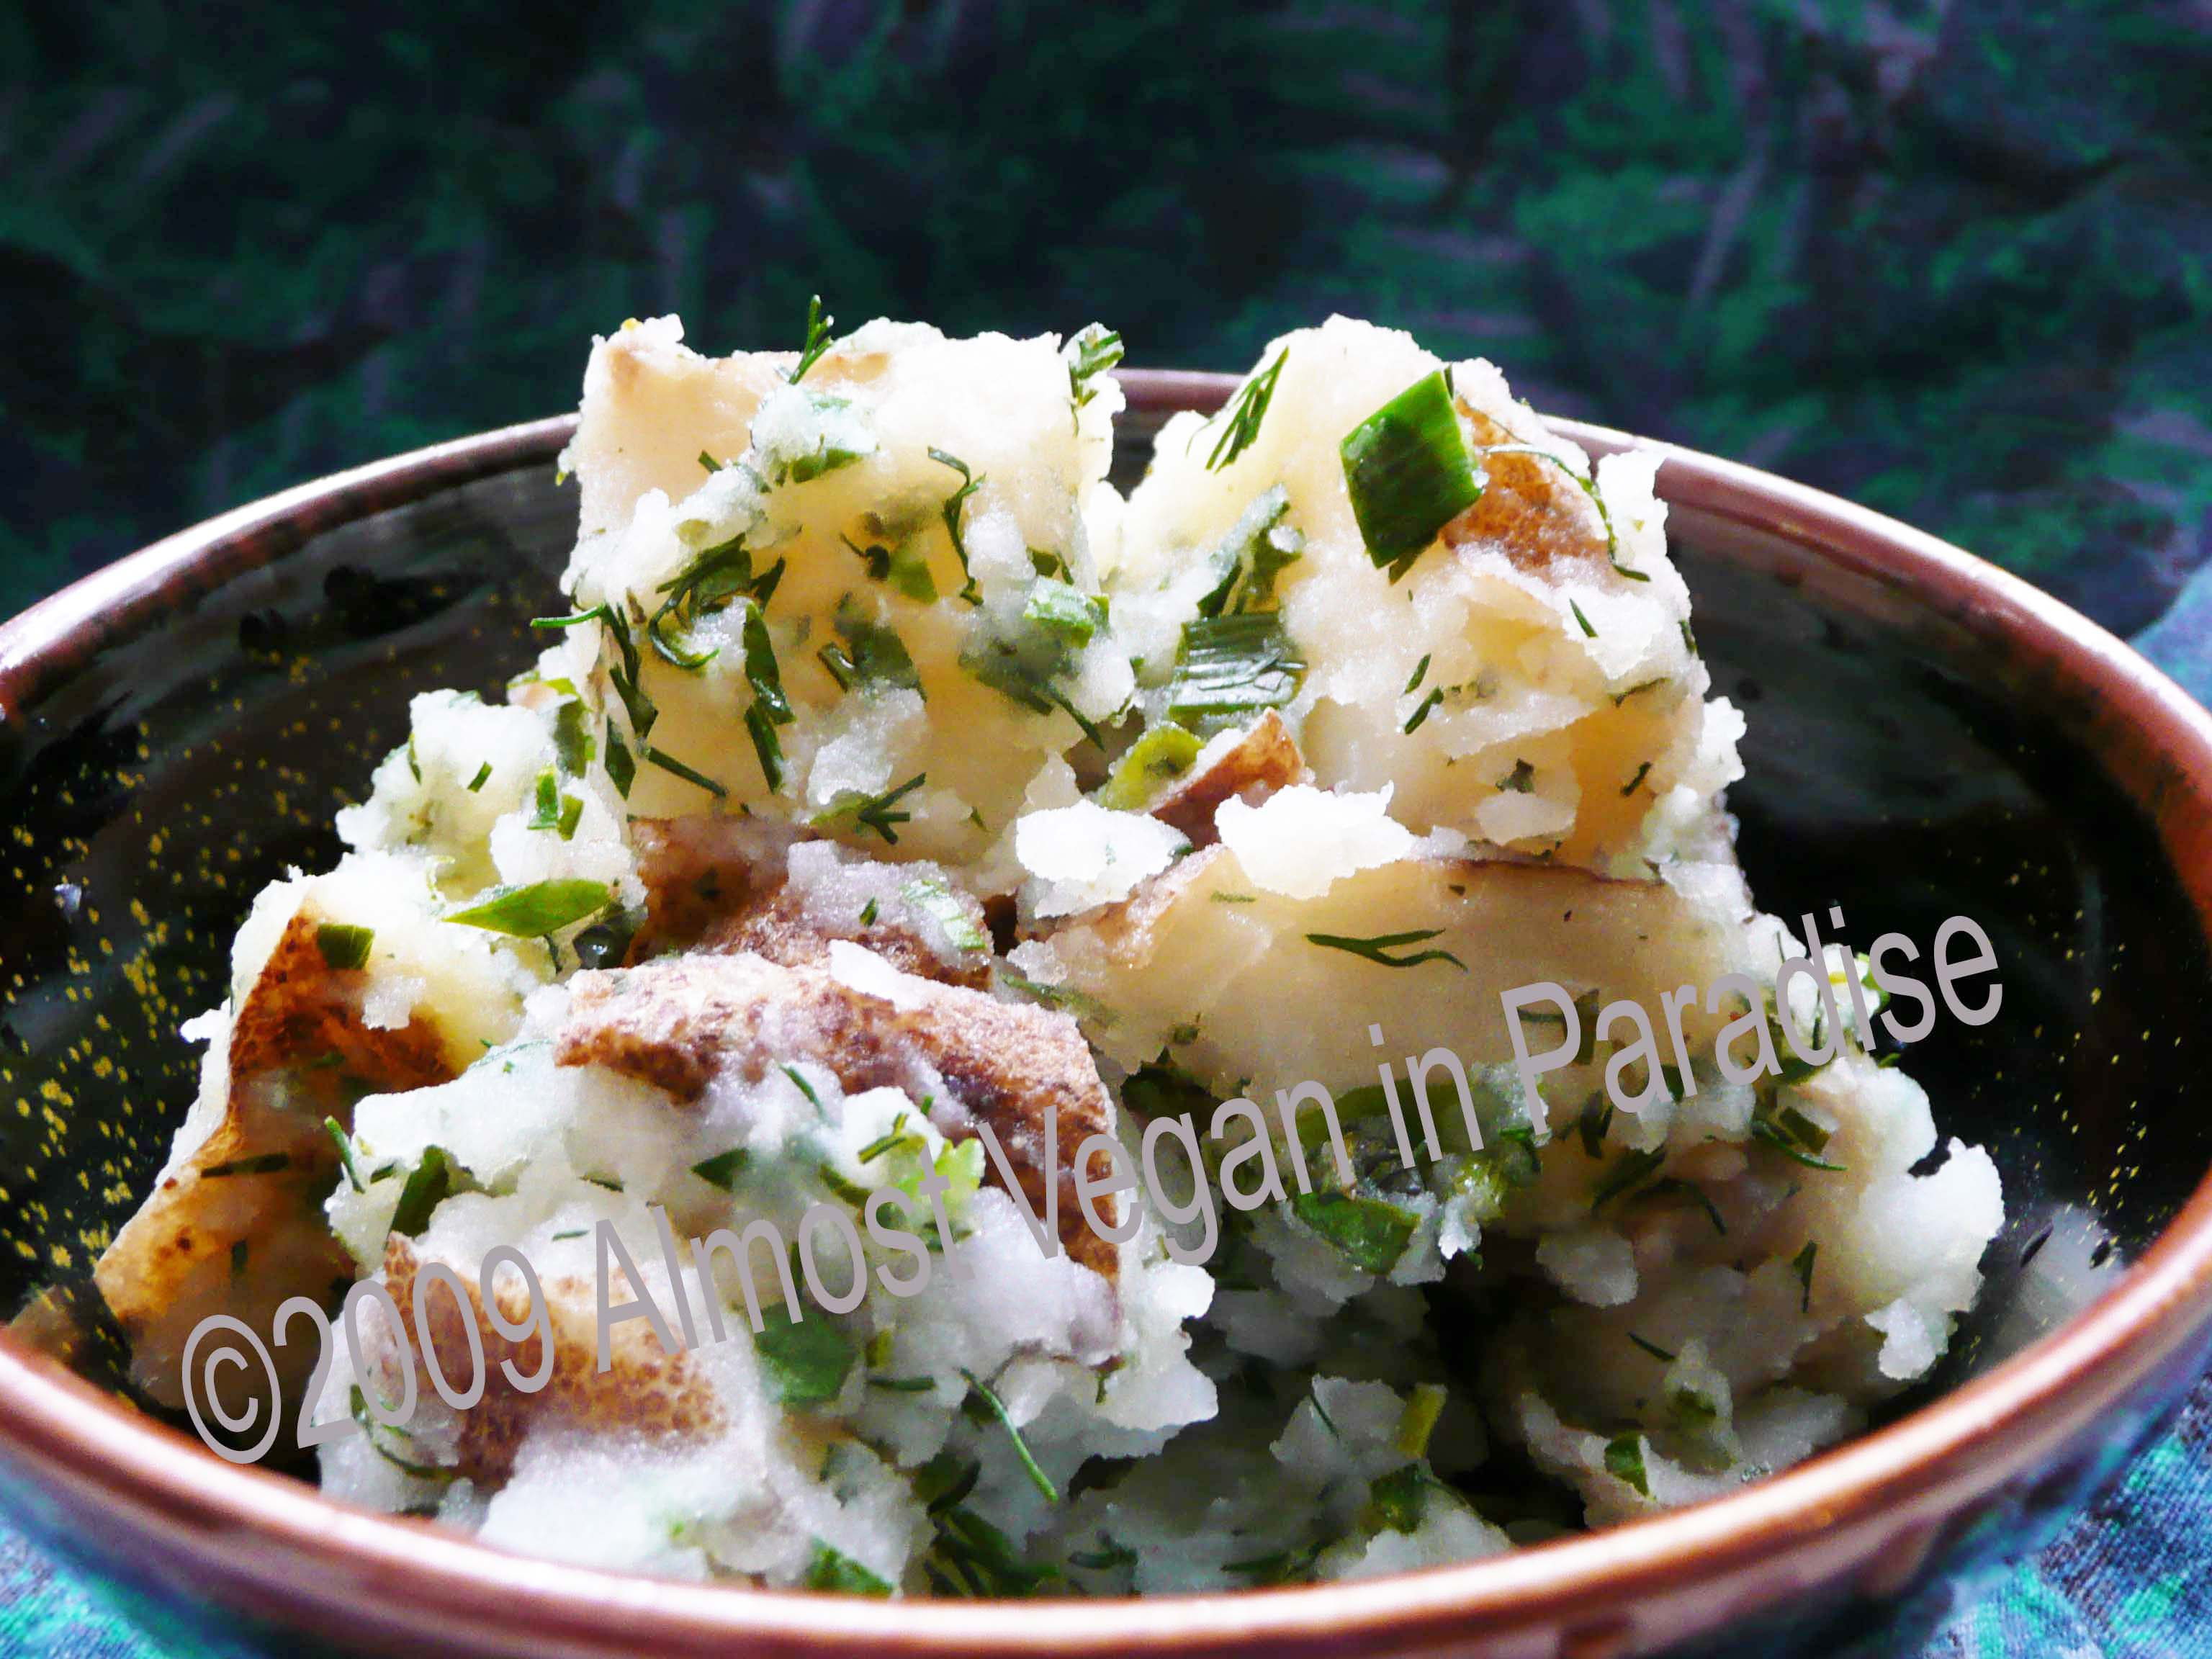 Greek-Inspired Potato Salad